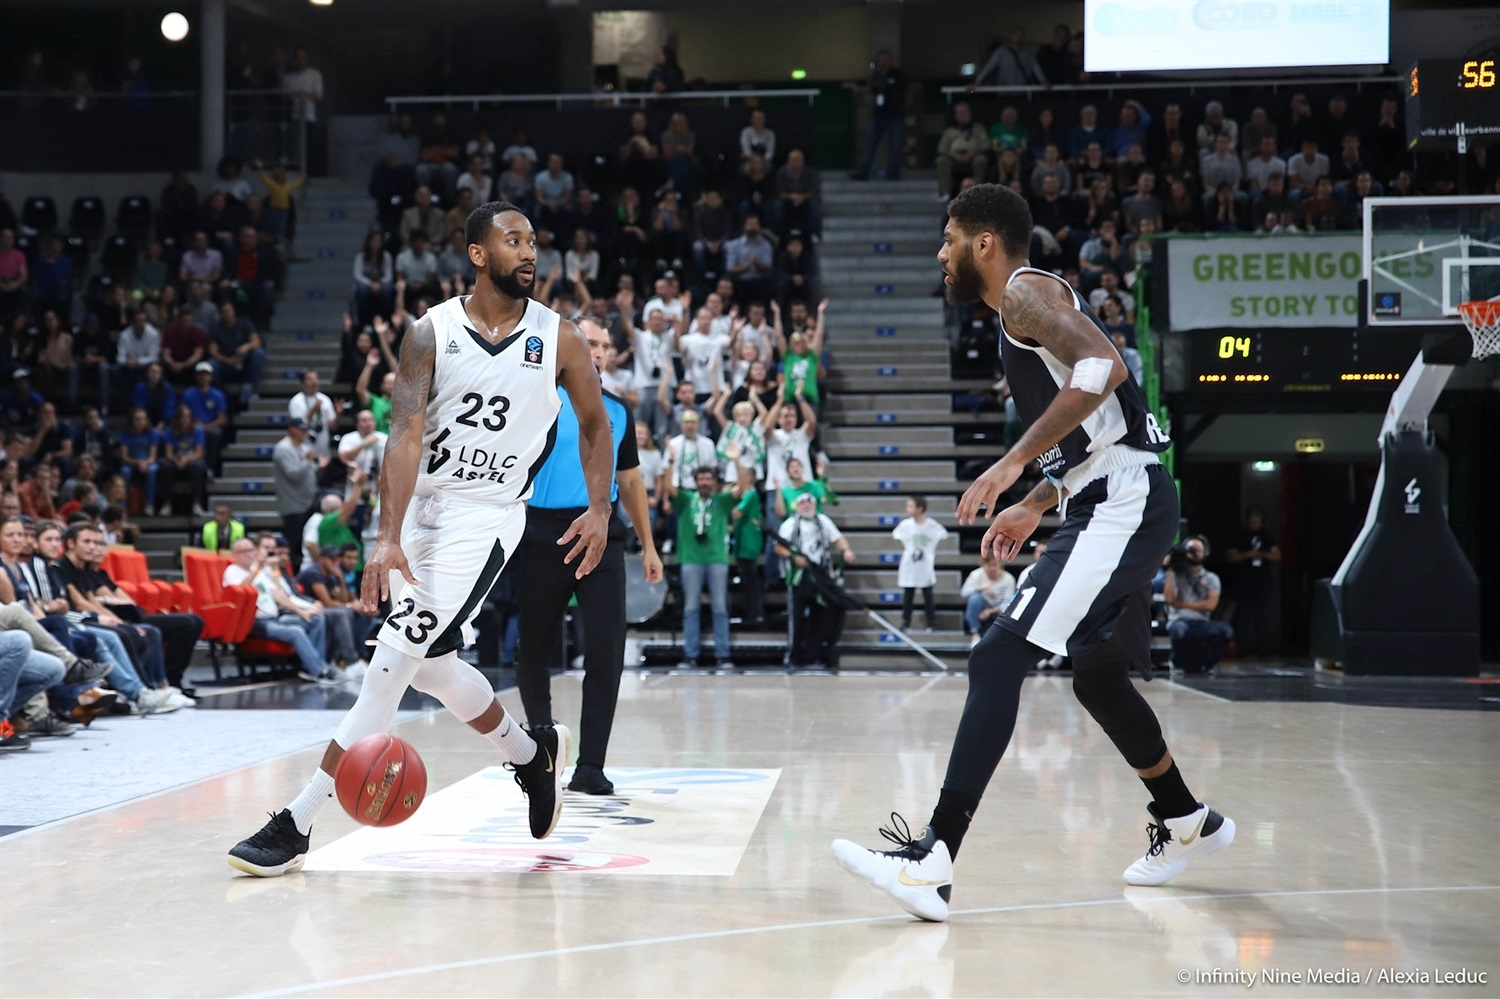 David Lighty - LDLC ASVEL Villeurbanne (photo Infinity Nine Media - Alexia Leduc) - EC18